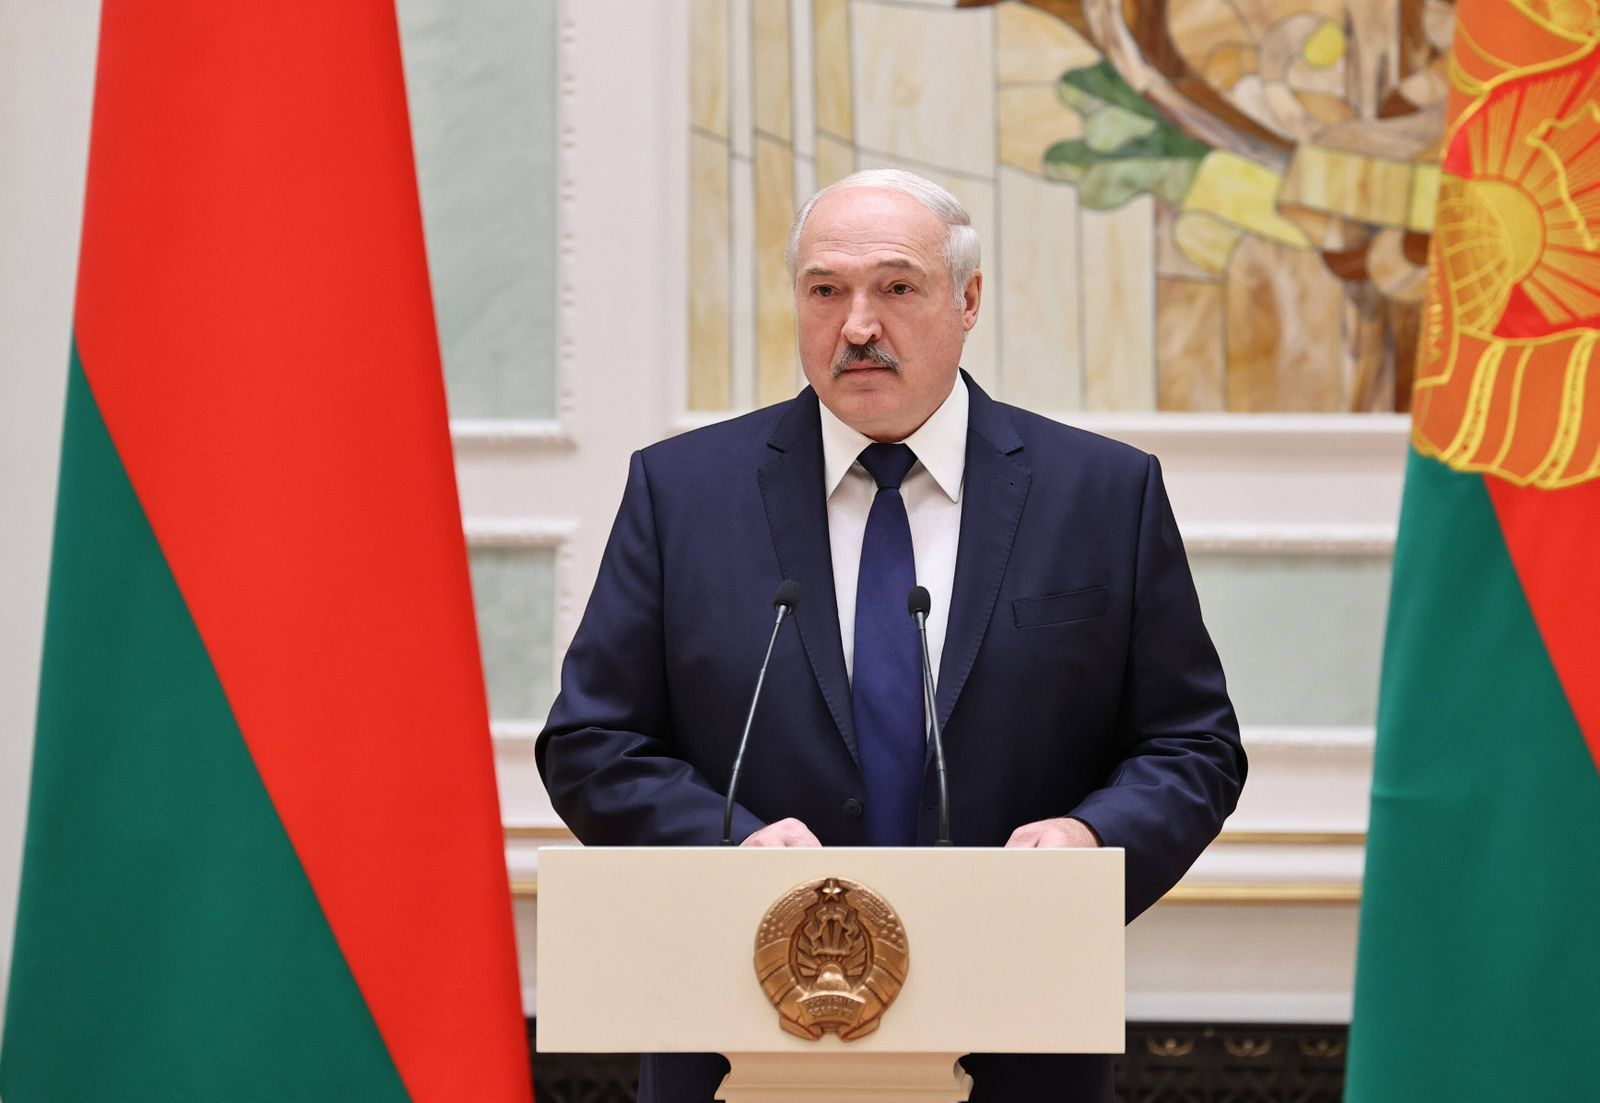 MINSK, BELARUS - OCTOBER 30, 2020: Belarus President Alexander Lukashenko during an introduction ceremony for the newly